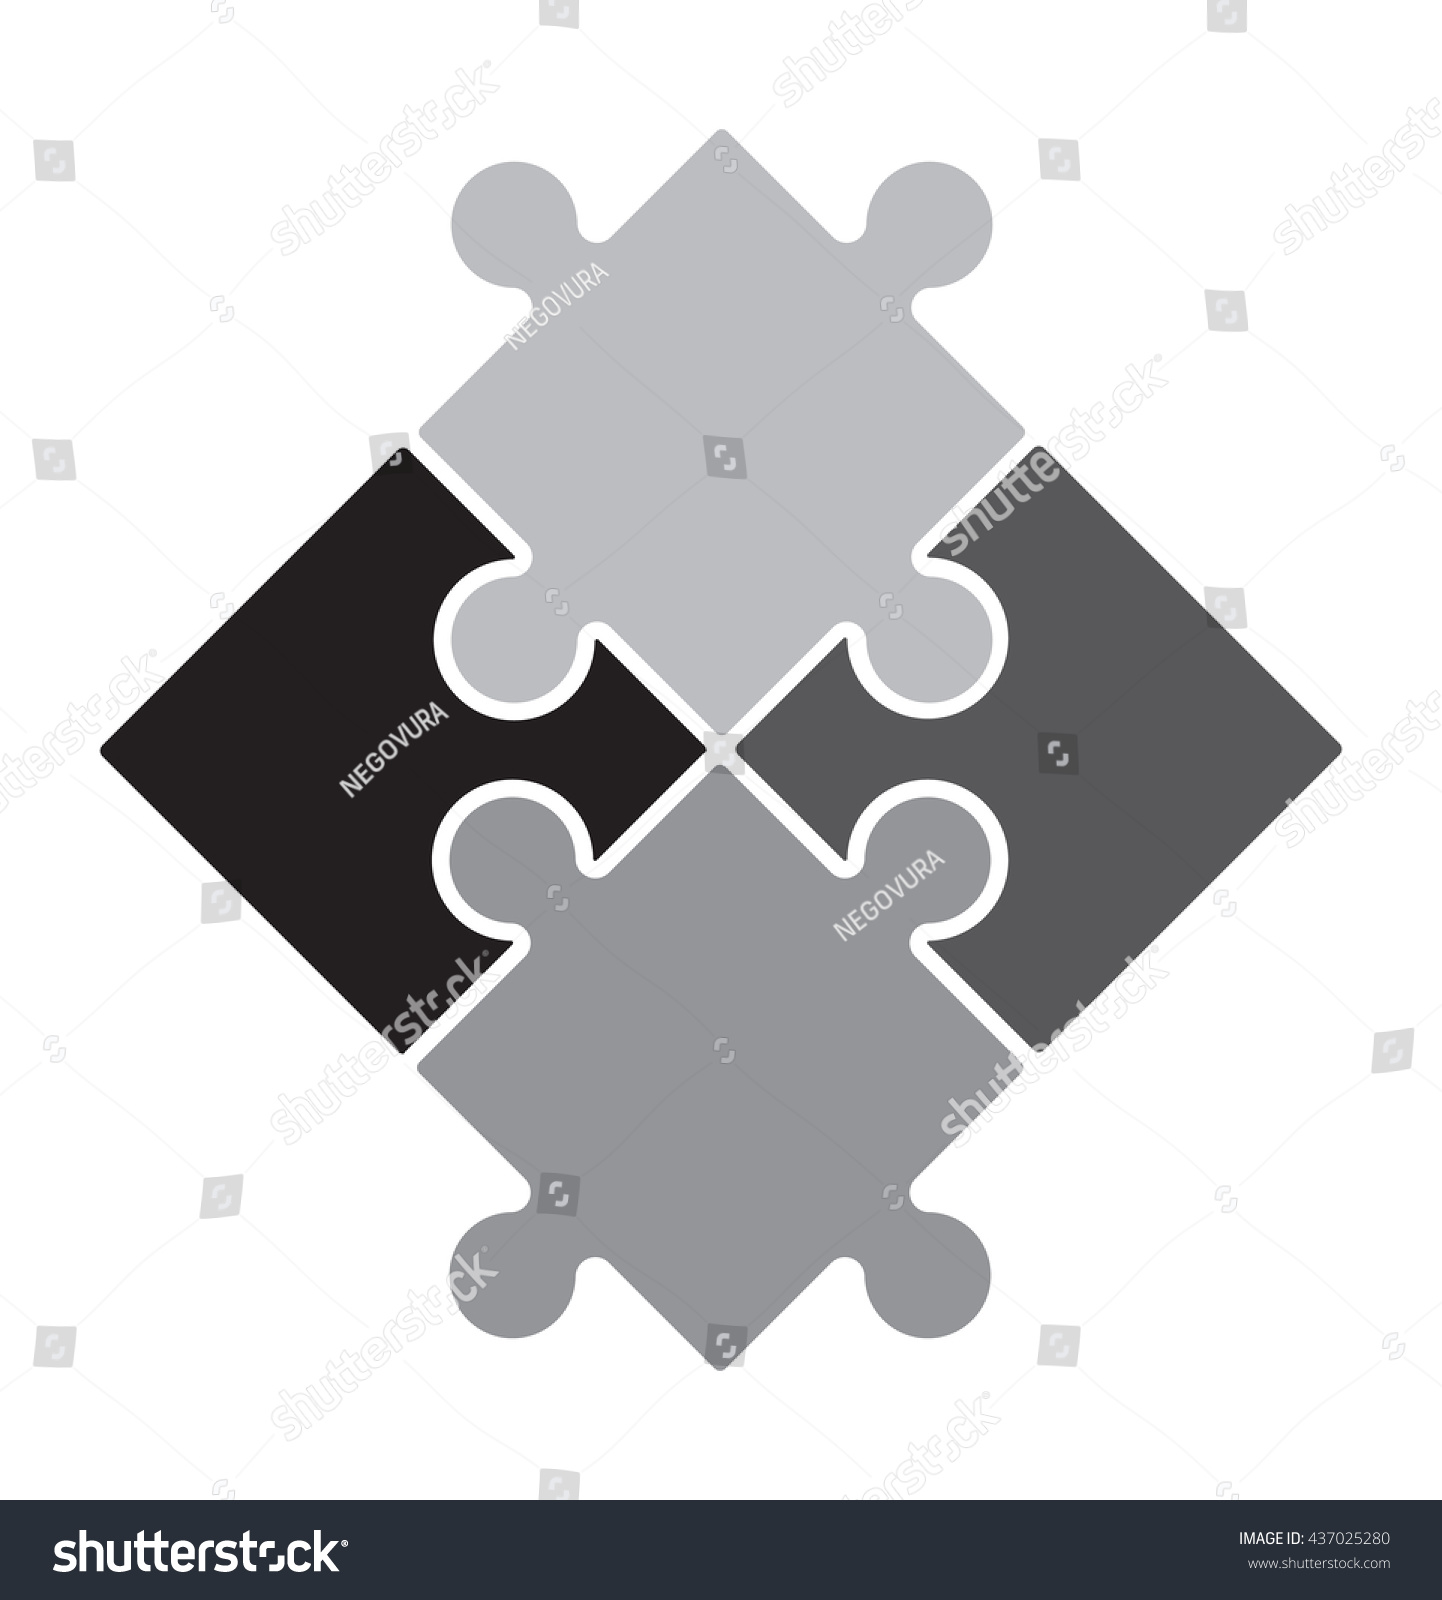 Puzzle Vector Icon Stock Vector 437025280 - Shutterstock